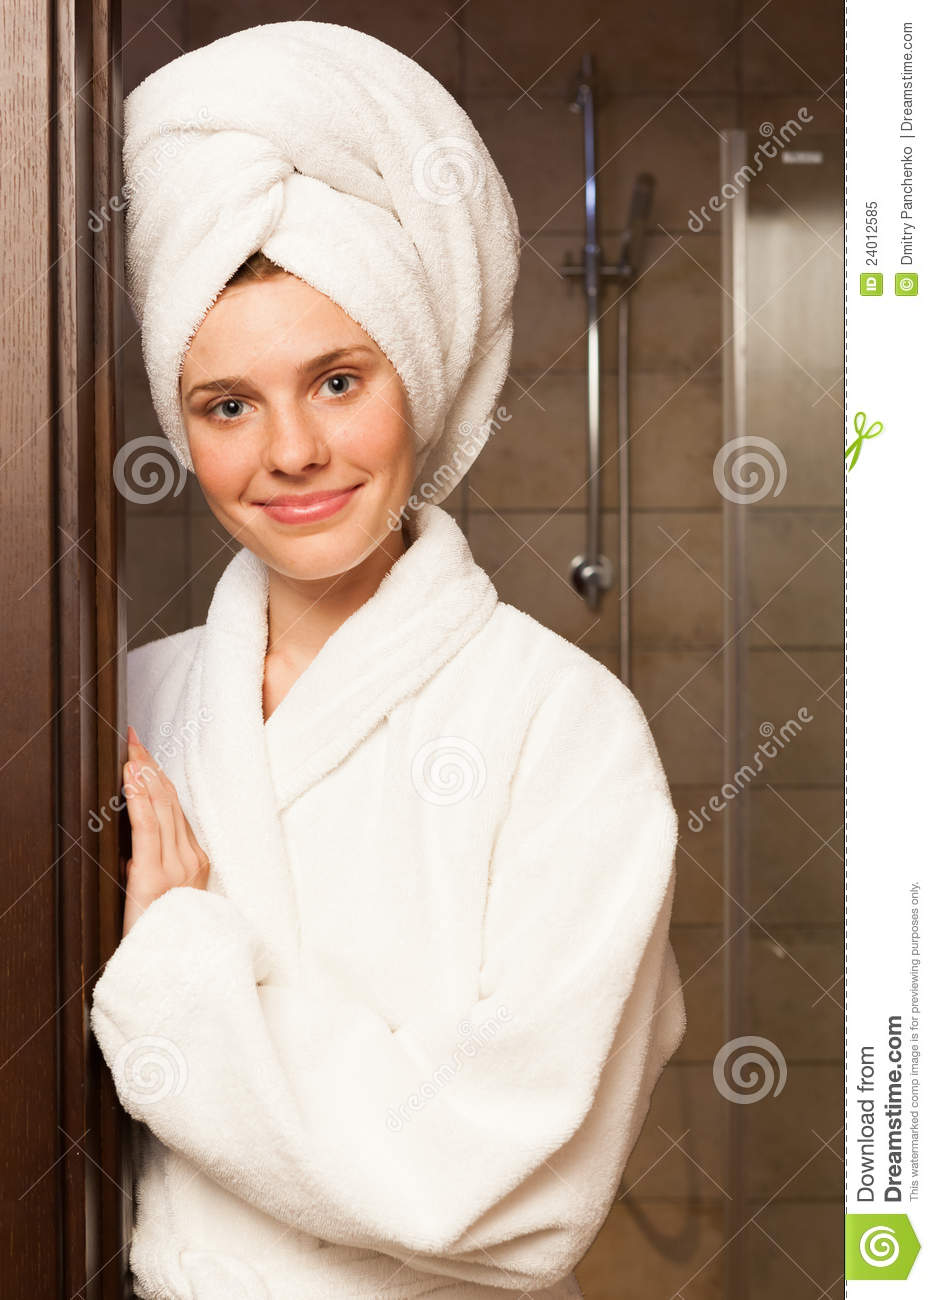 Young woman wearing a robe stock image. Image of care - 24012585 312862aa6